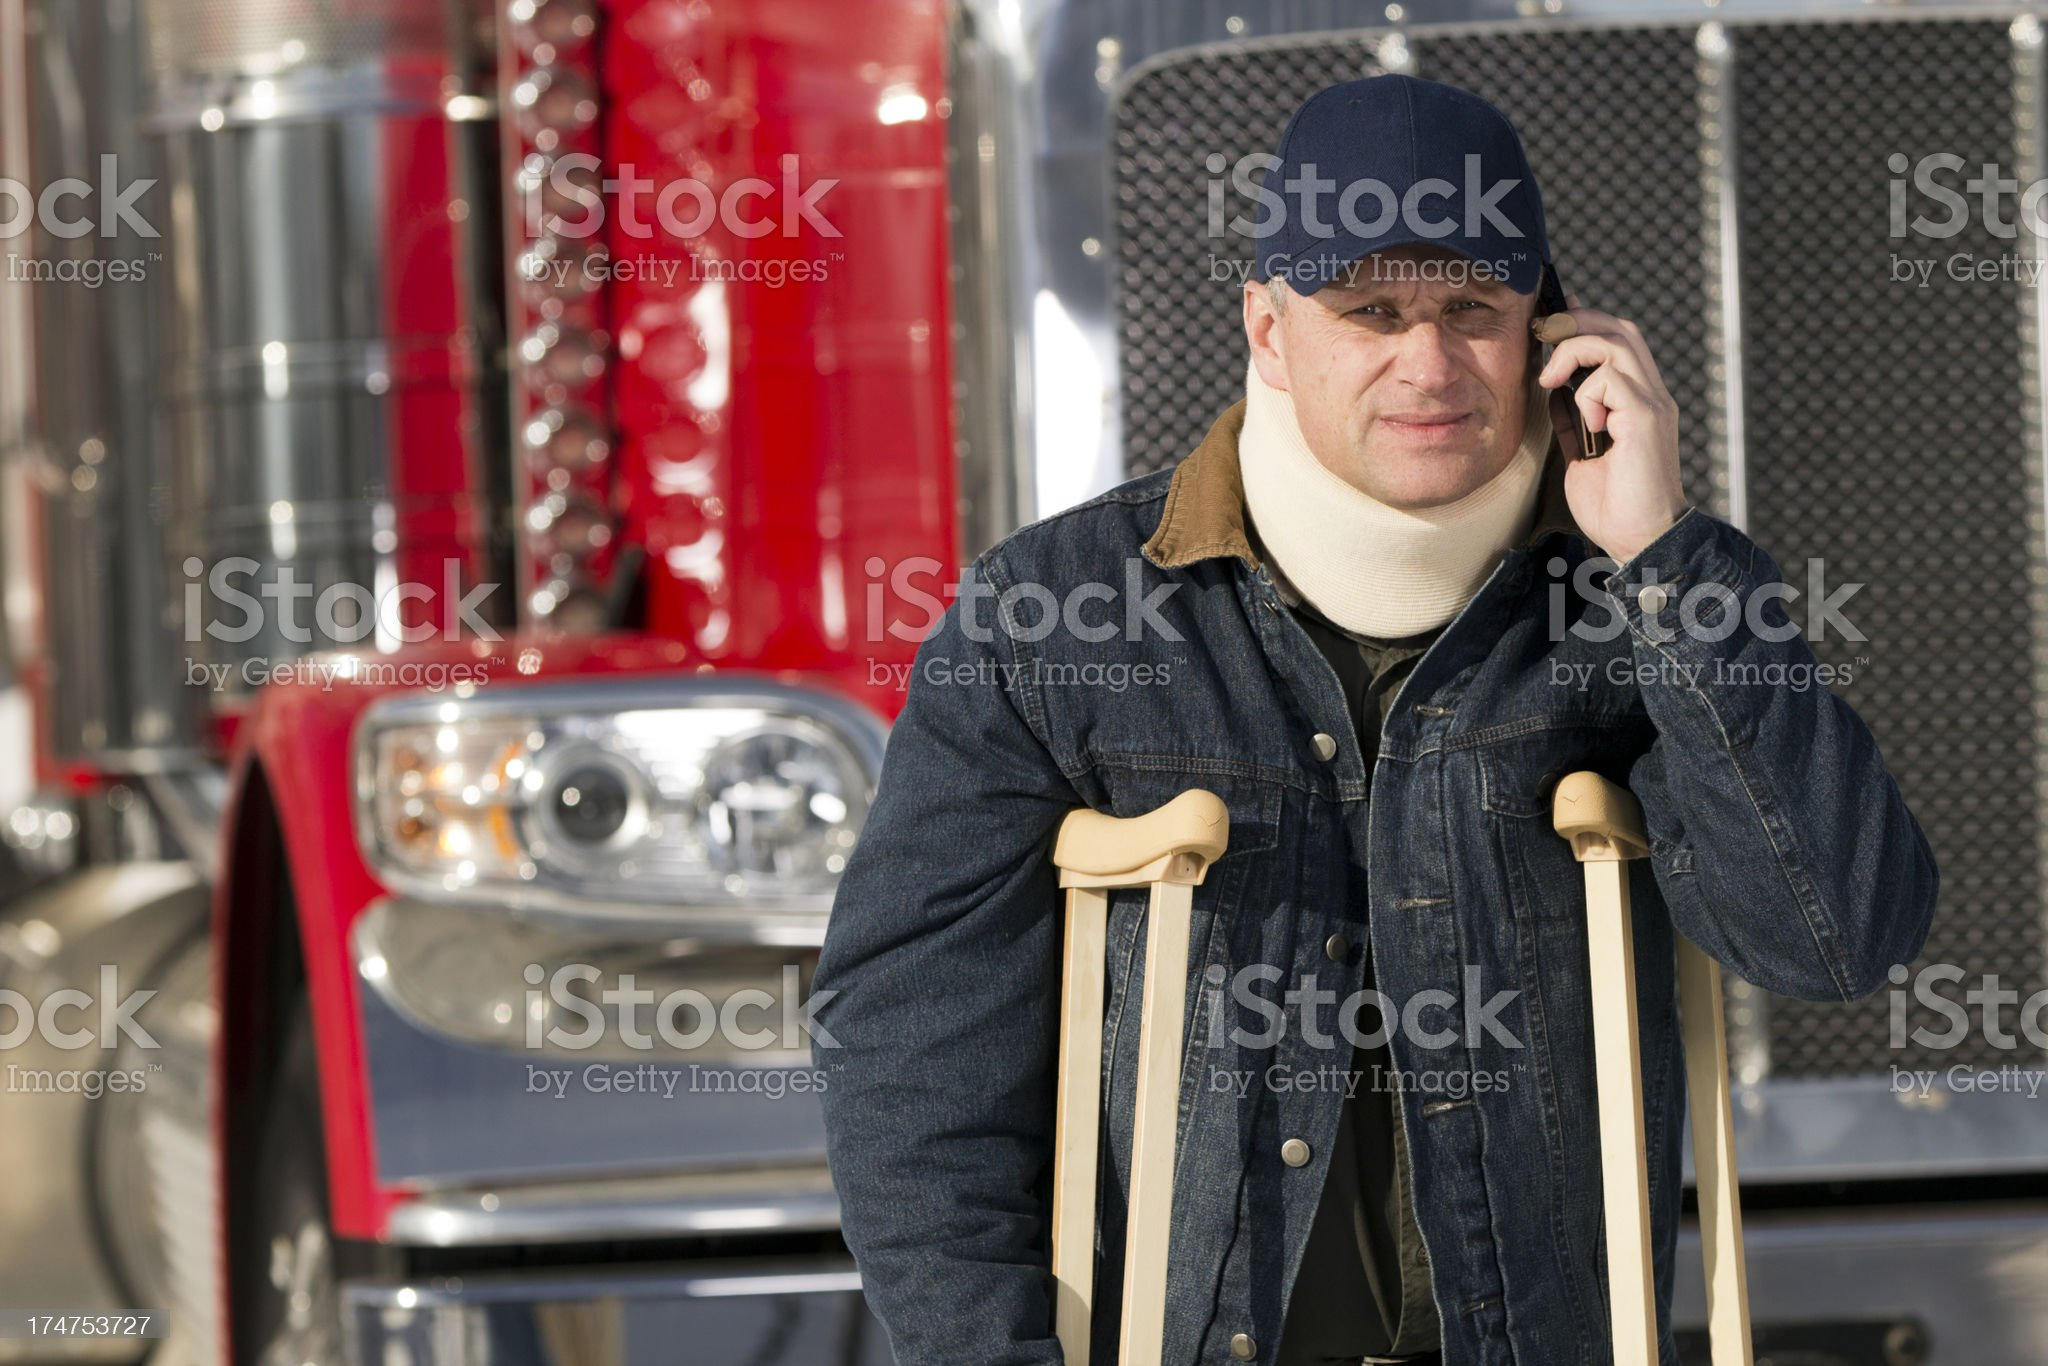 Injured Driver on the Phone royalty-free stock photo